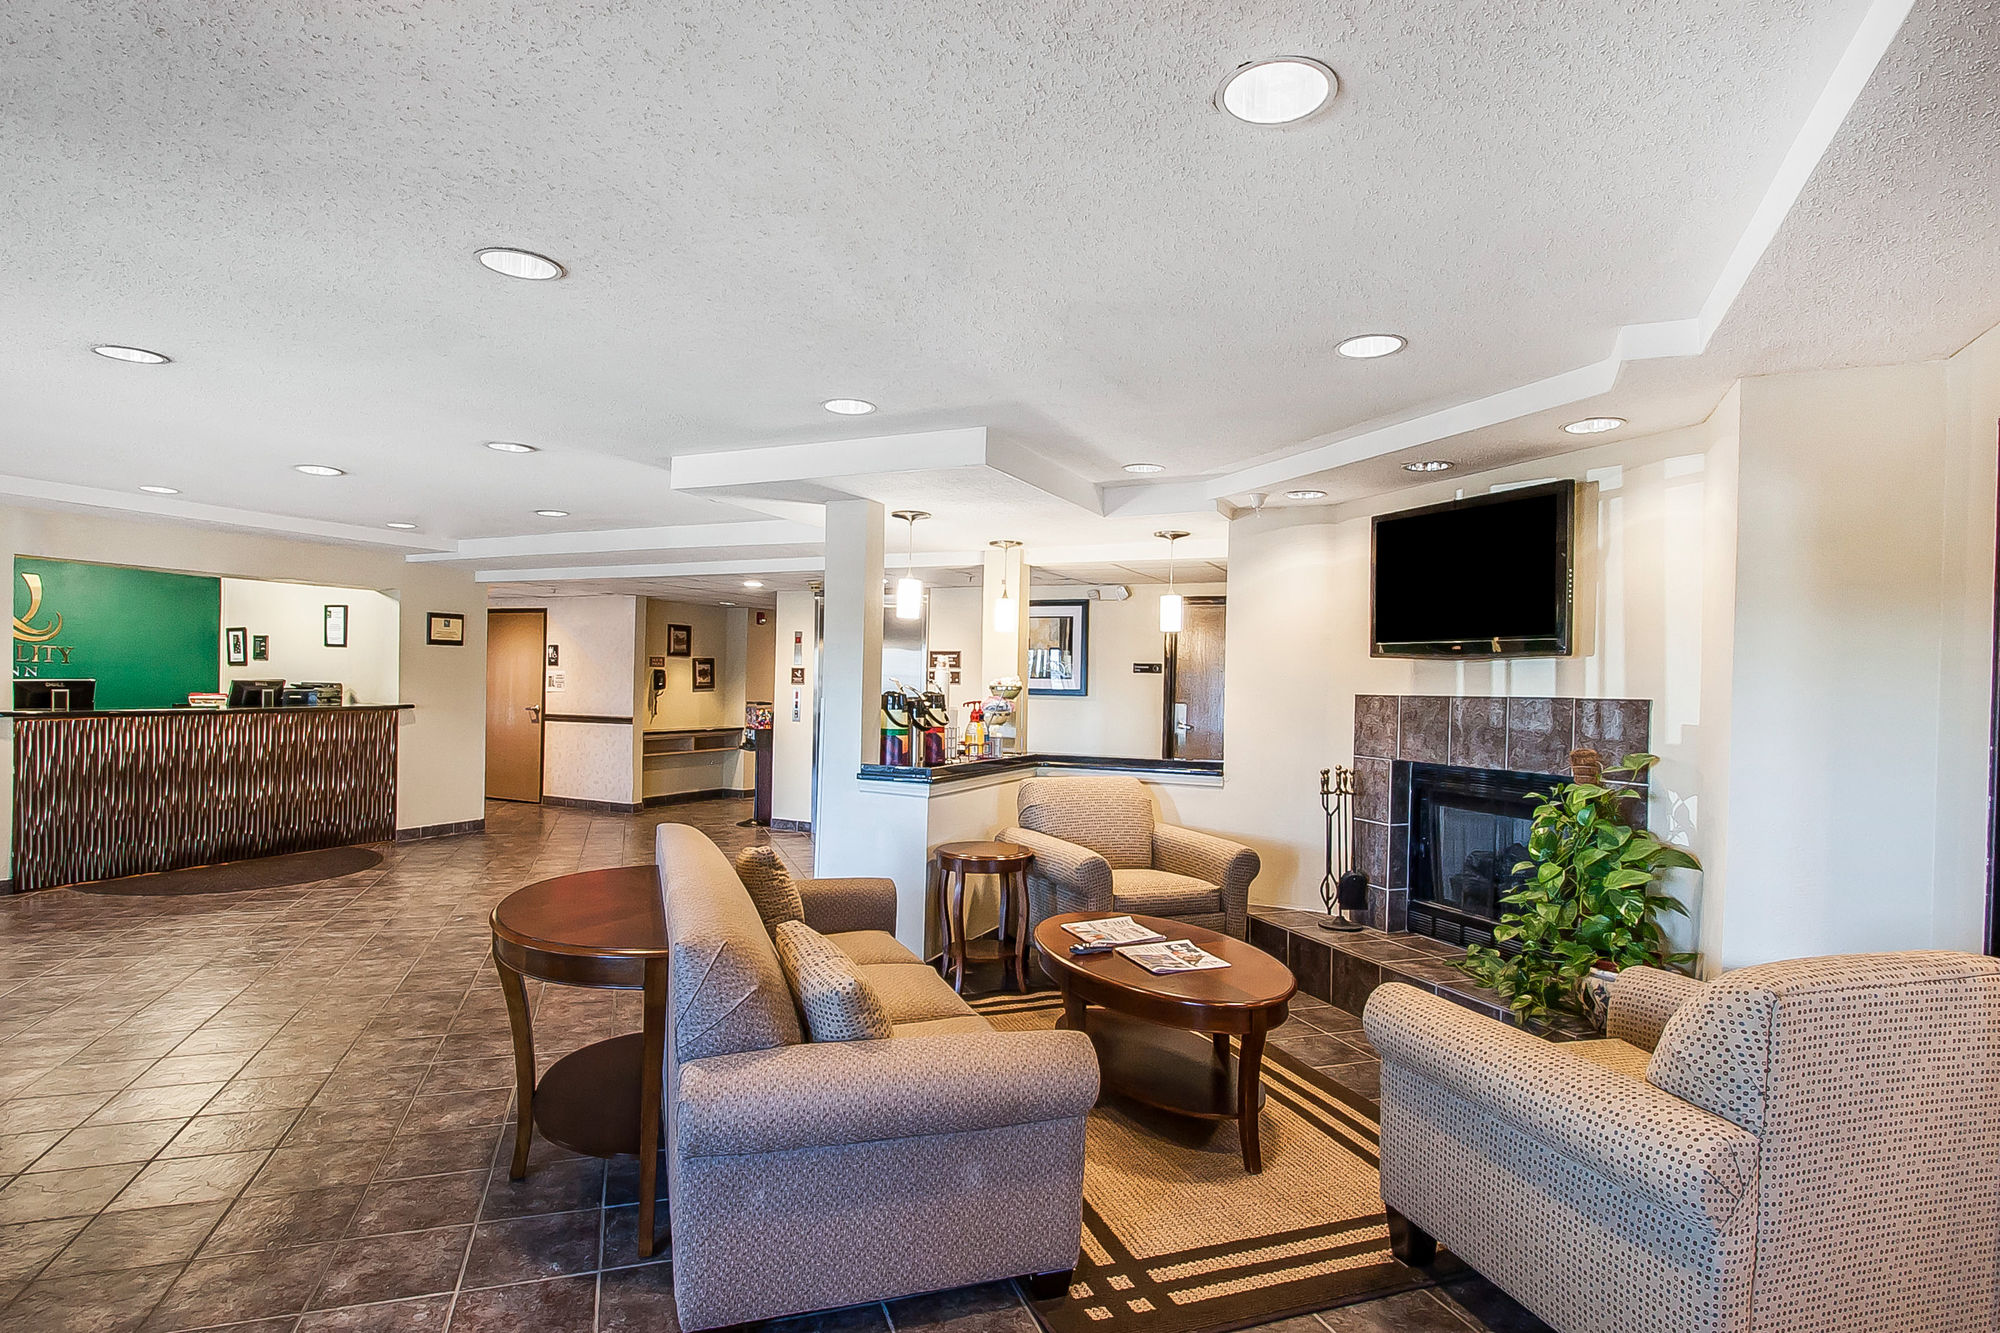 Quality Inn & Suites in Murfreesboro, TN